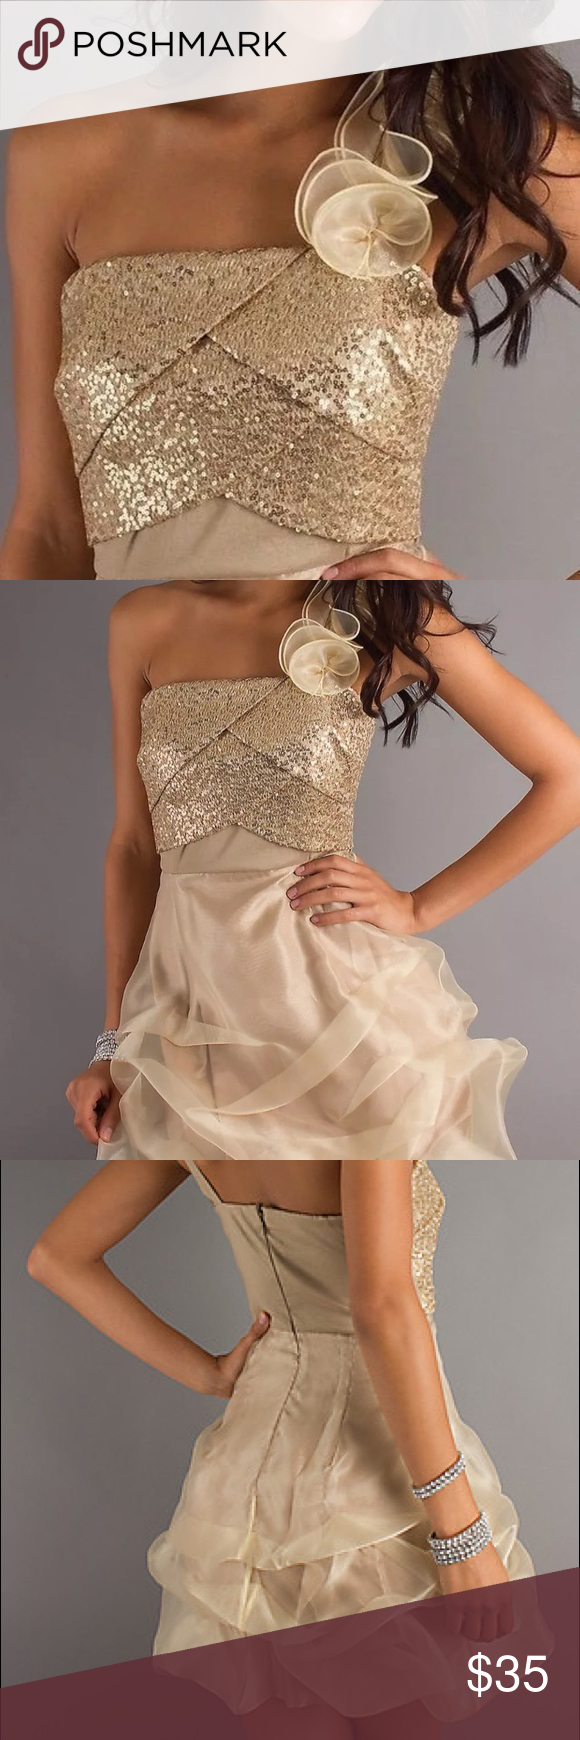 Short Gold Prom Formal Cocktail Dress This beautiful short formal dress is in perfect condition, only worn once. It is bound to make a lasting impression with its gold sequin design and a ruffled single strap complete with a slim fitting bodice that sparkles. This is perfect for a cocktail dress for prom, a sweet sixteen party dress, or a homecoming dress in shimmering gold. XOXO Dresses One Shoulder